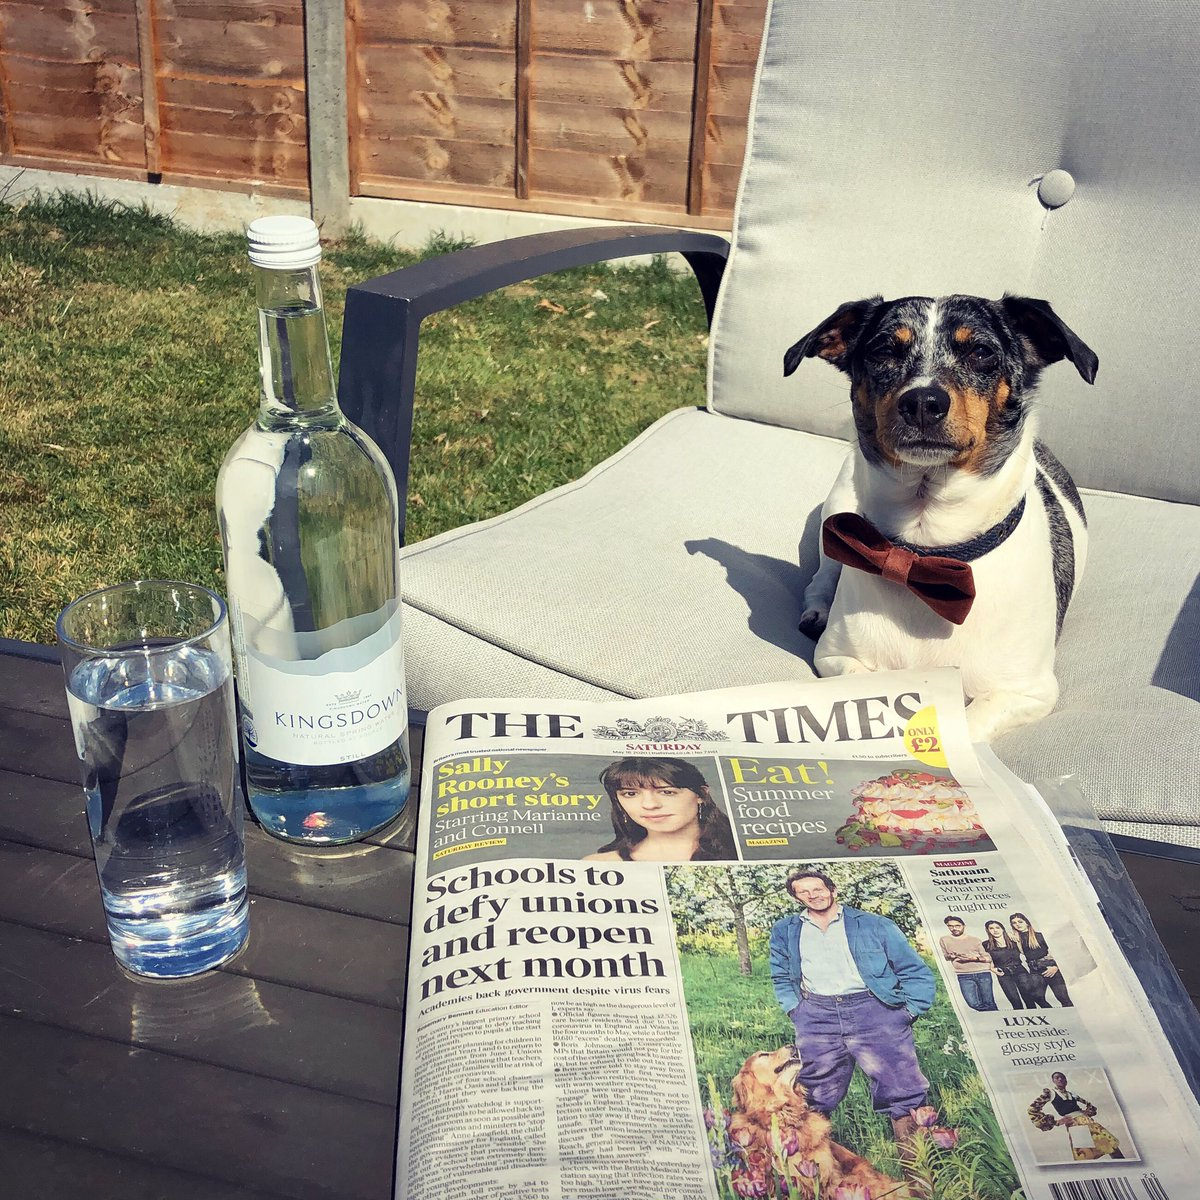 ☀️Take a peek in The Times paper today for an exclusive code to use on our new website 📰 #thetimes #satursdaypaper #SaturdayVibes #SaturdayMorning #promotion https://t.co/TkqQx3VJJ0